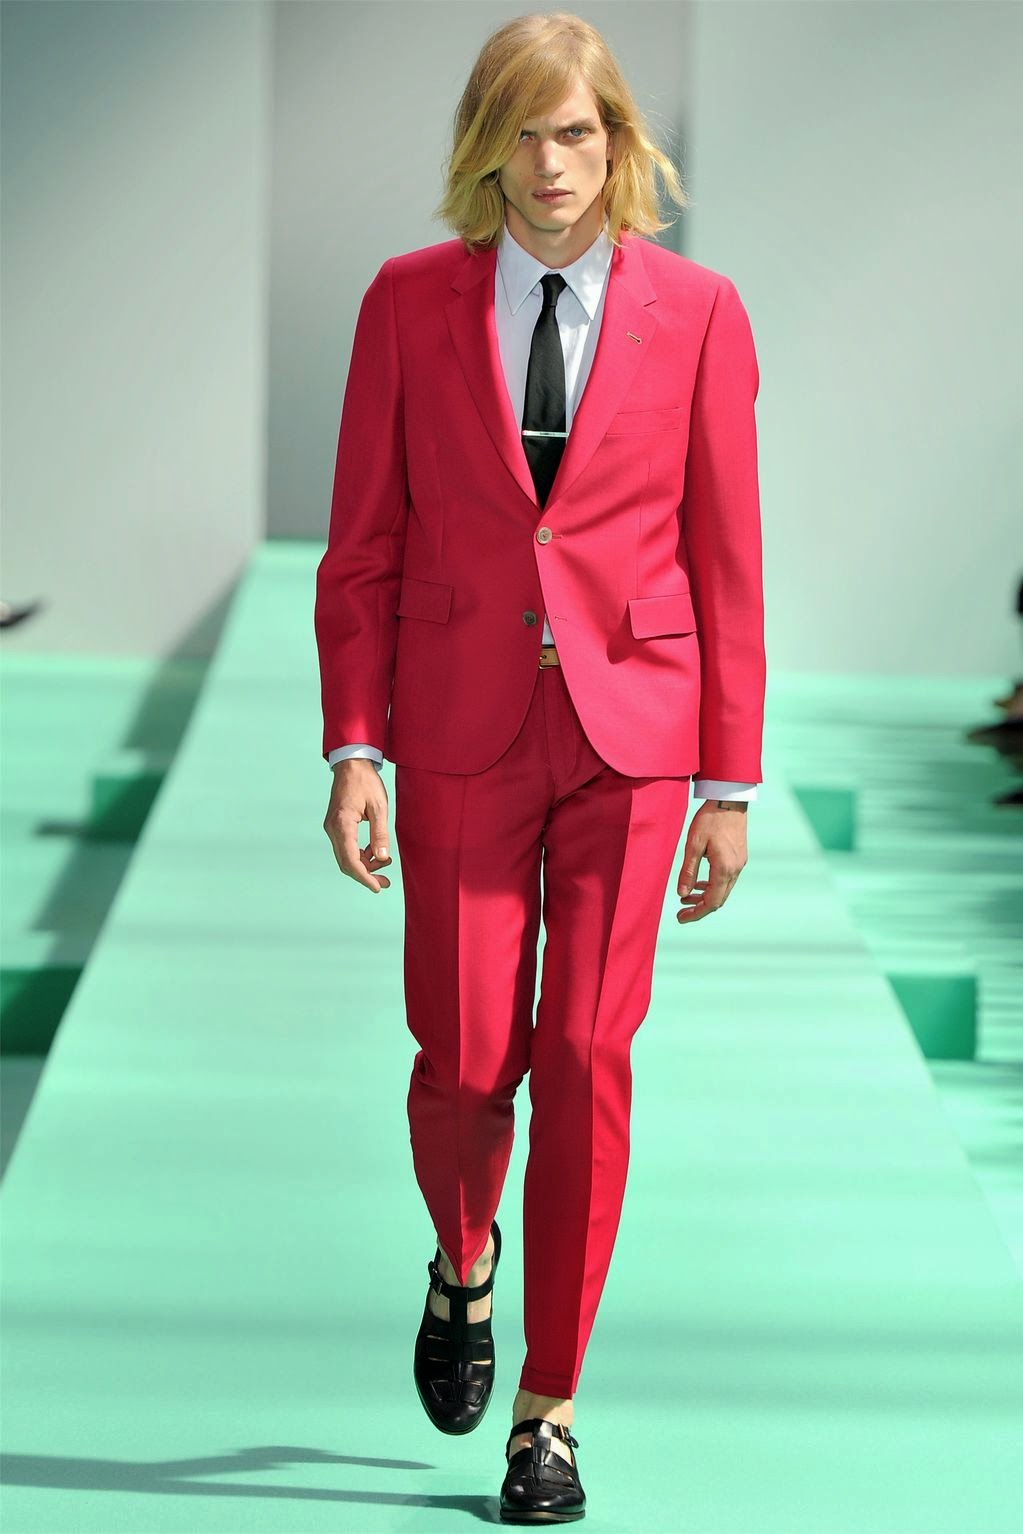 Paul Smith Spring Summer 2013